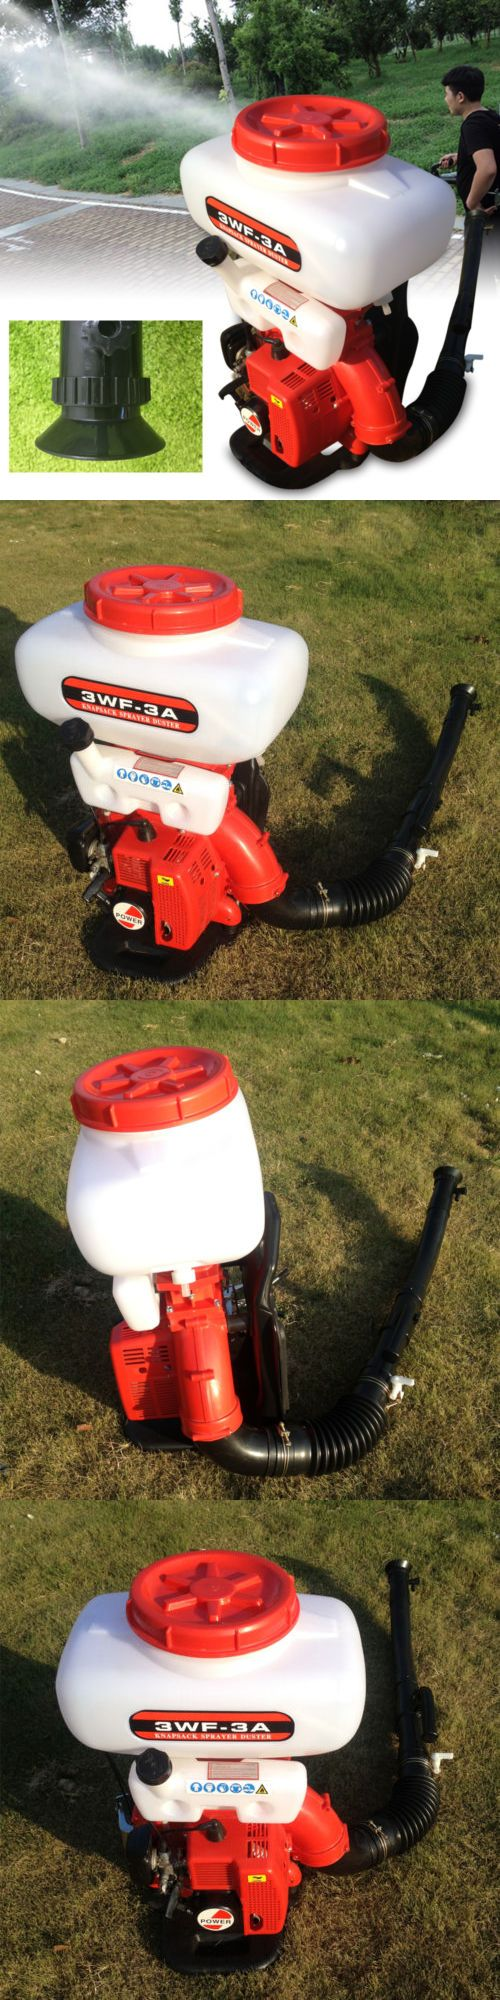 Garden Sprayers 178984 Mist Duster Sprayer Agricultural Gasoline Powered Backpack Blower High Quality Buy It Now Only 1 Mists Ebay Dusters